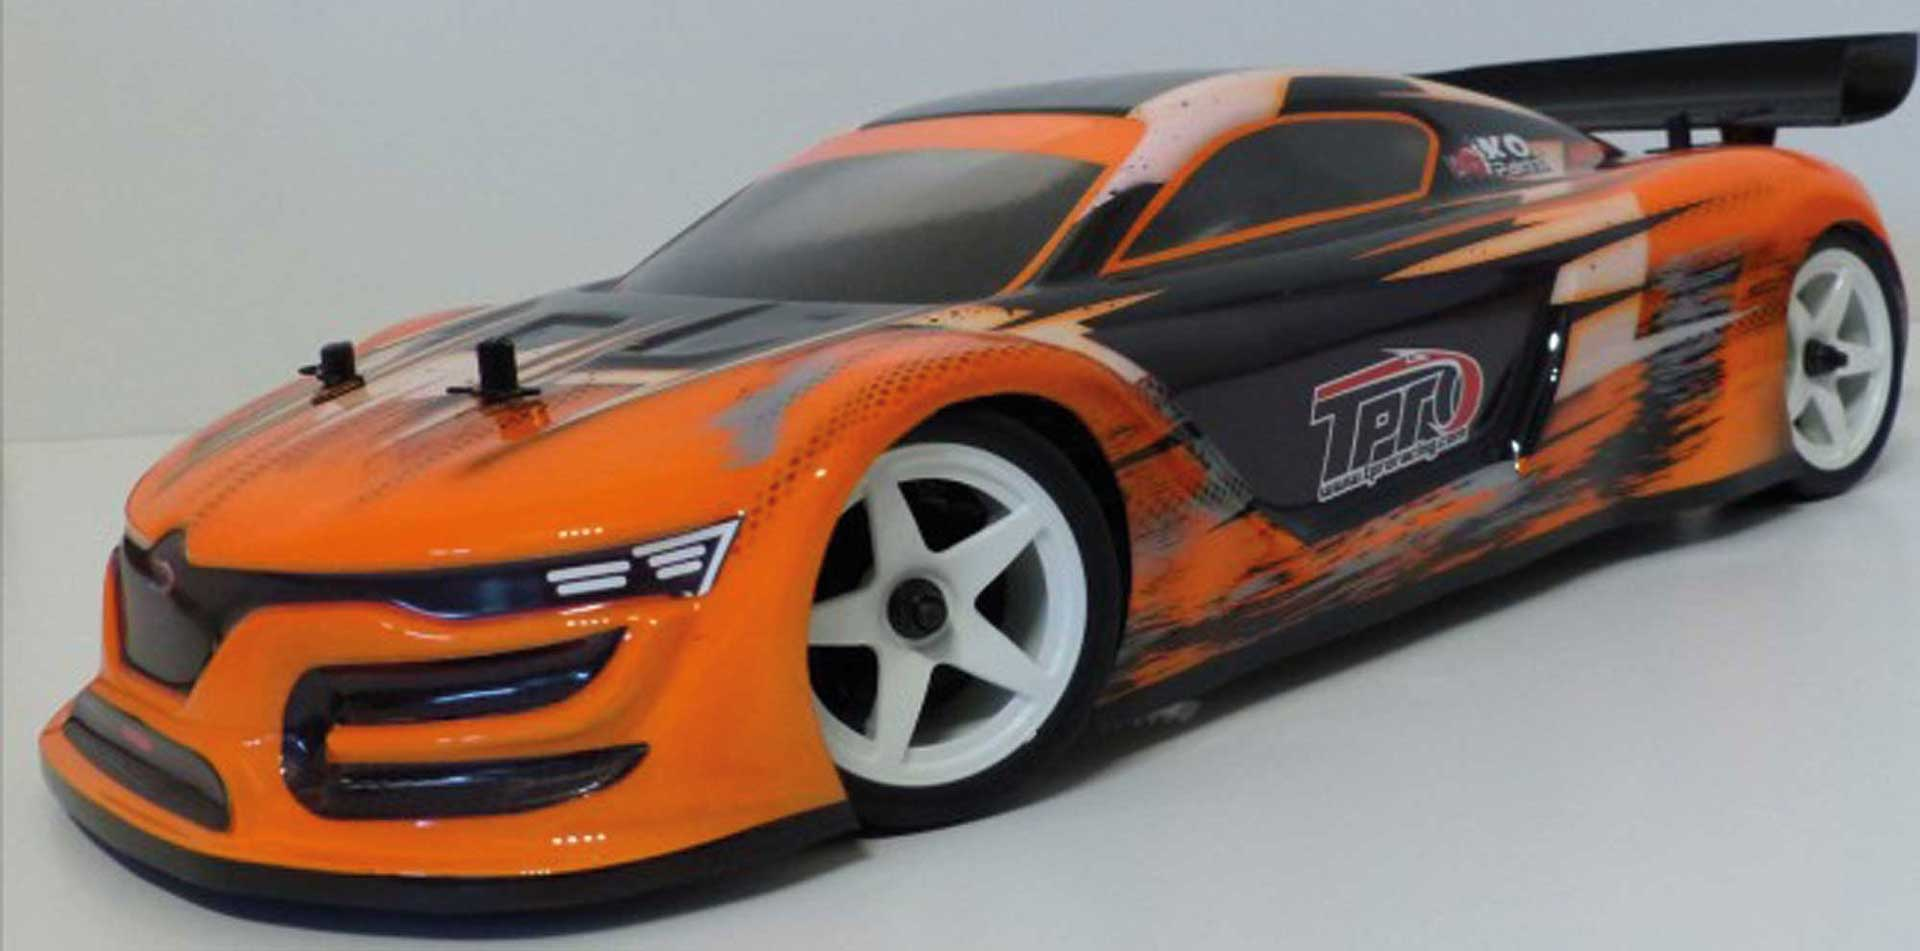 TPRO Body GT3 Touring Car unpainted incl. Sticker